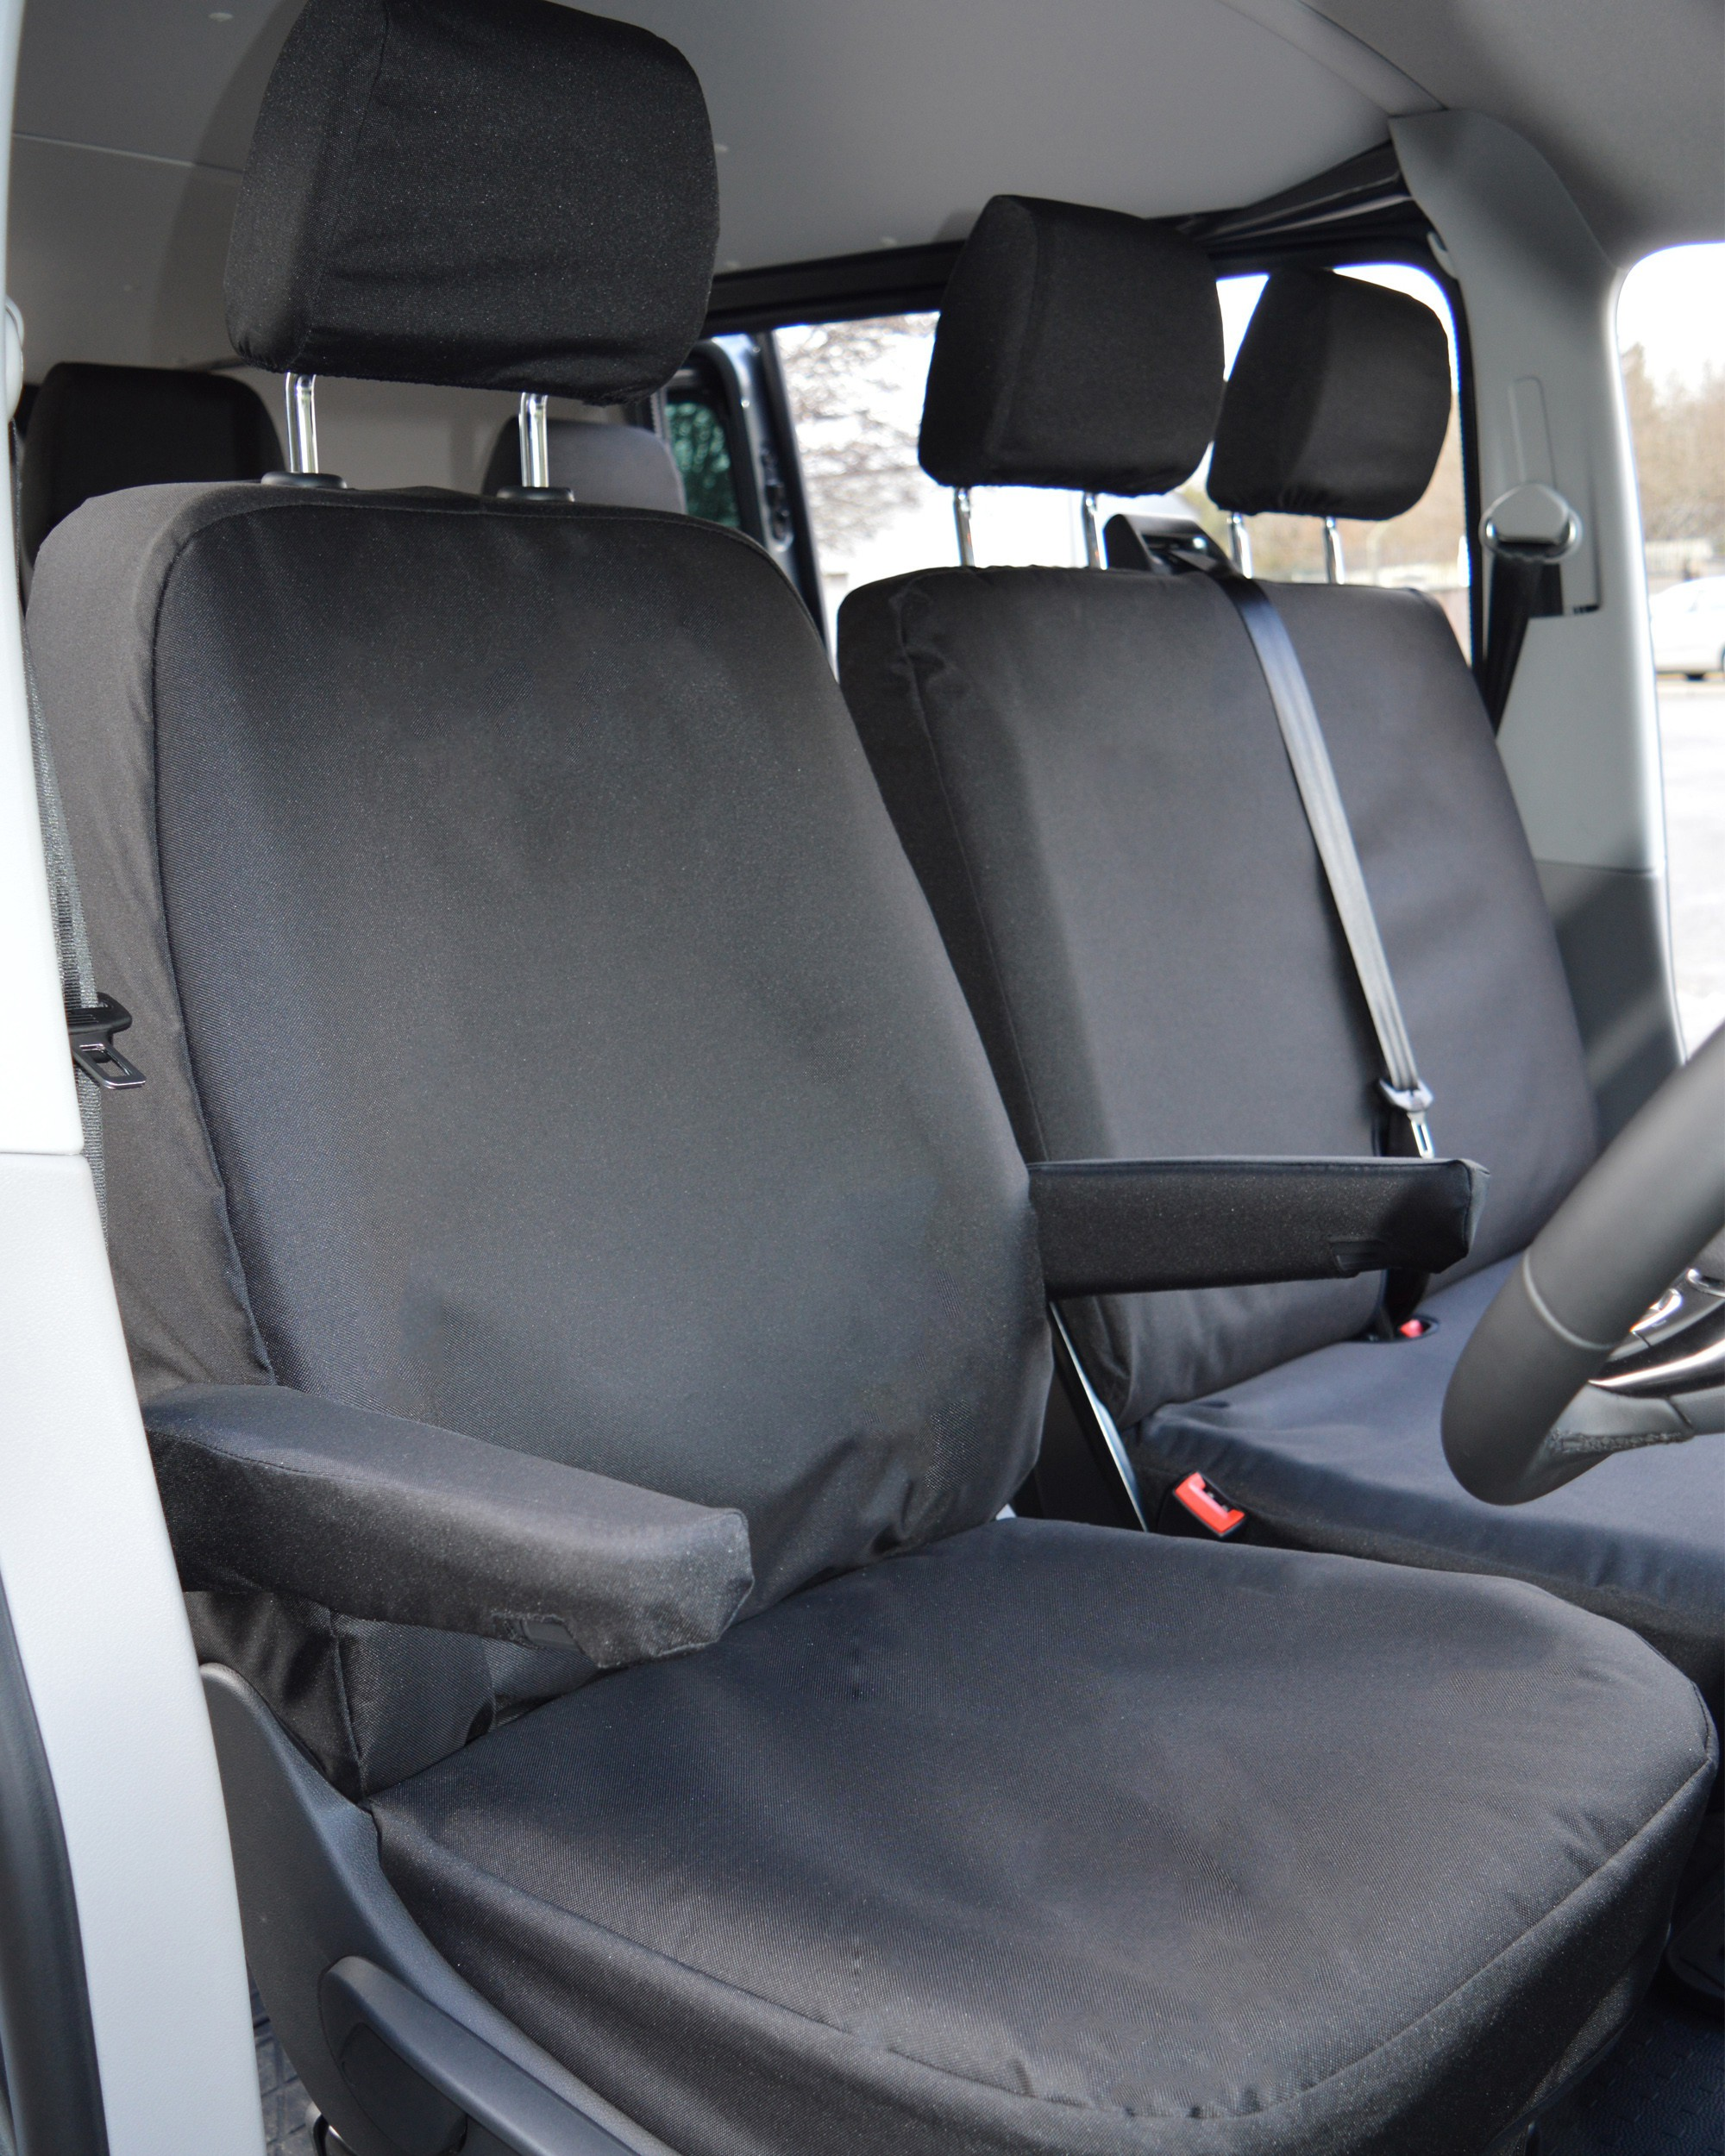 VW Transporter T6 extra heavy duty seat covers - drivers seat